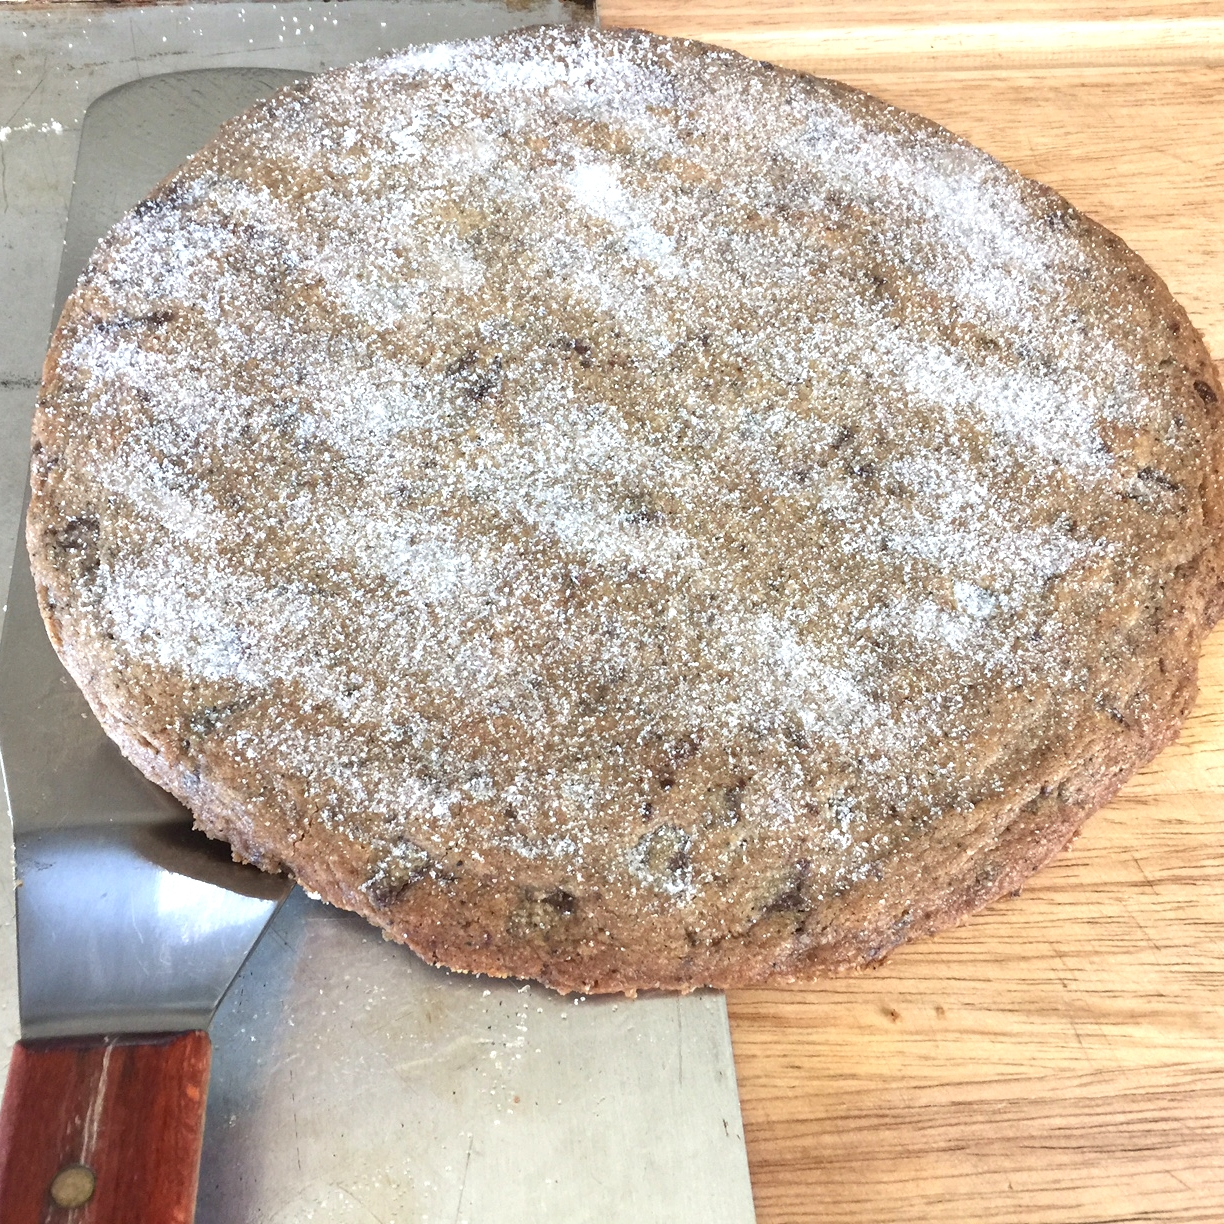 After it is baked, sprinkle the top with sugar. Using a large spatula,slide the disk onto a work surface.